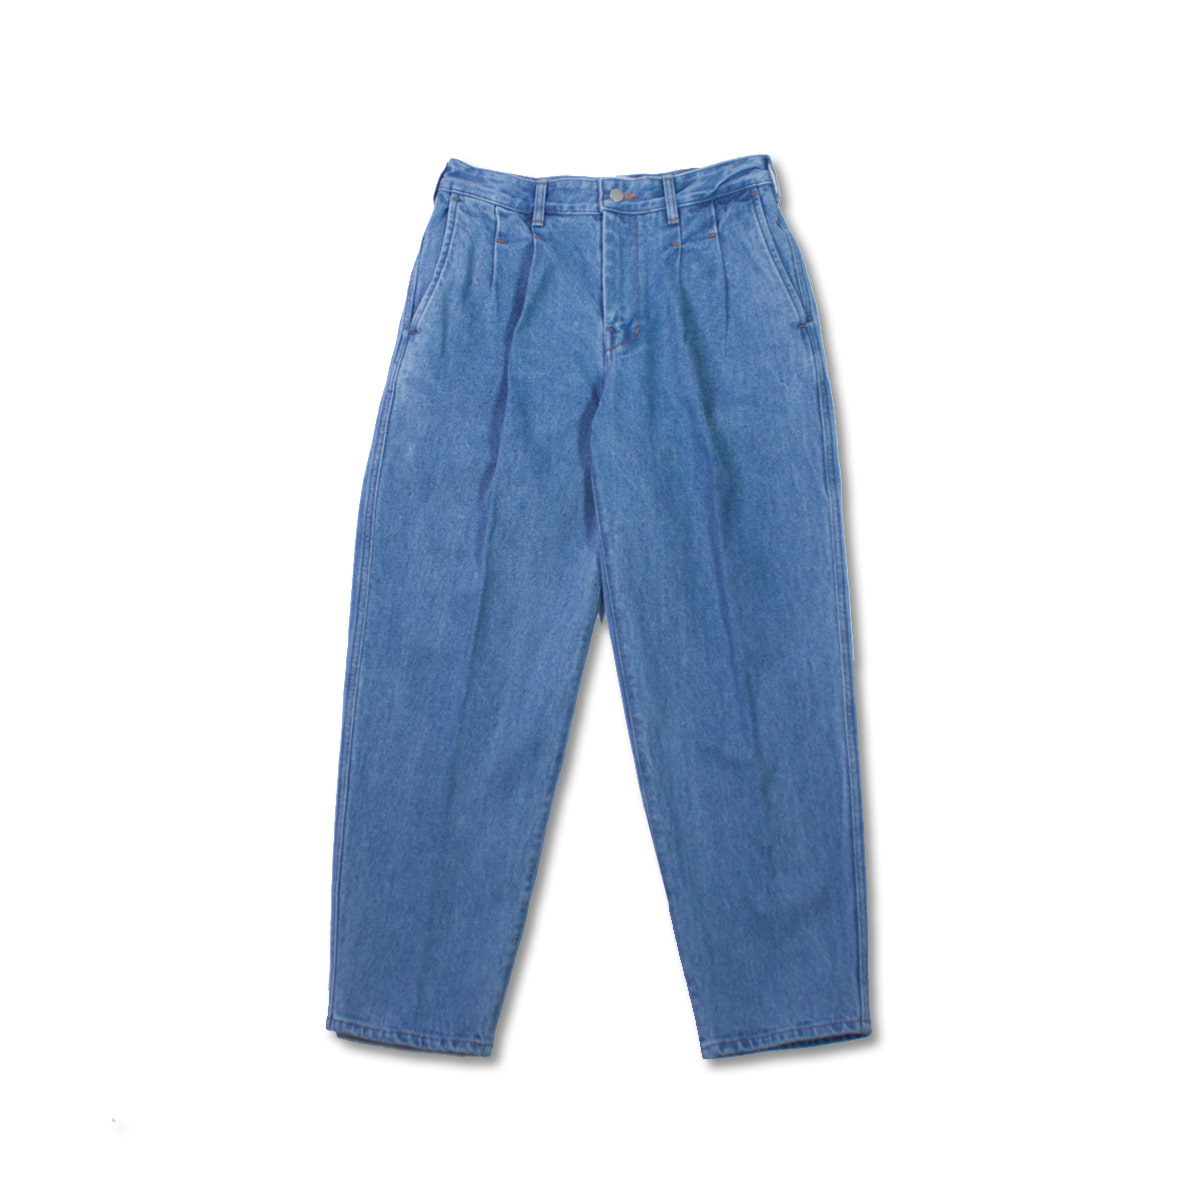 [8DIVISION] PLEATED JEANS 'USED BLUE'